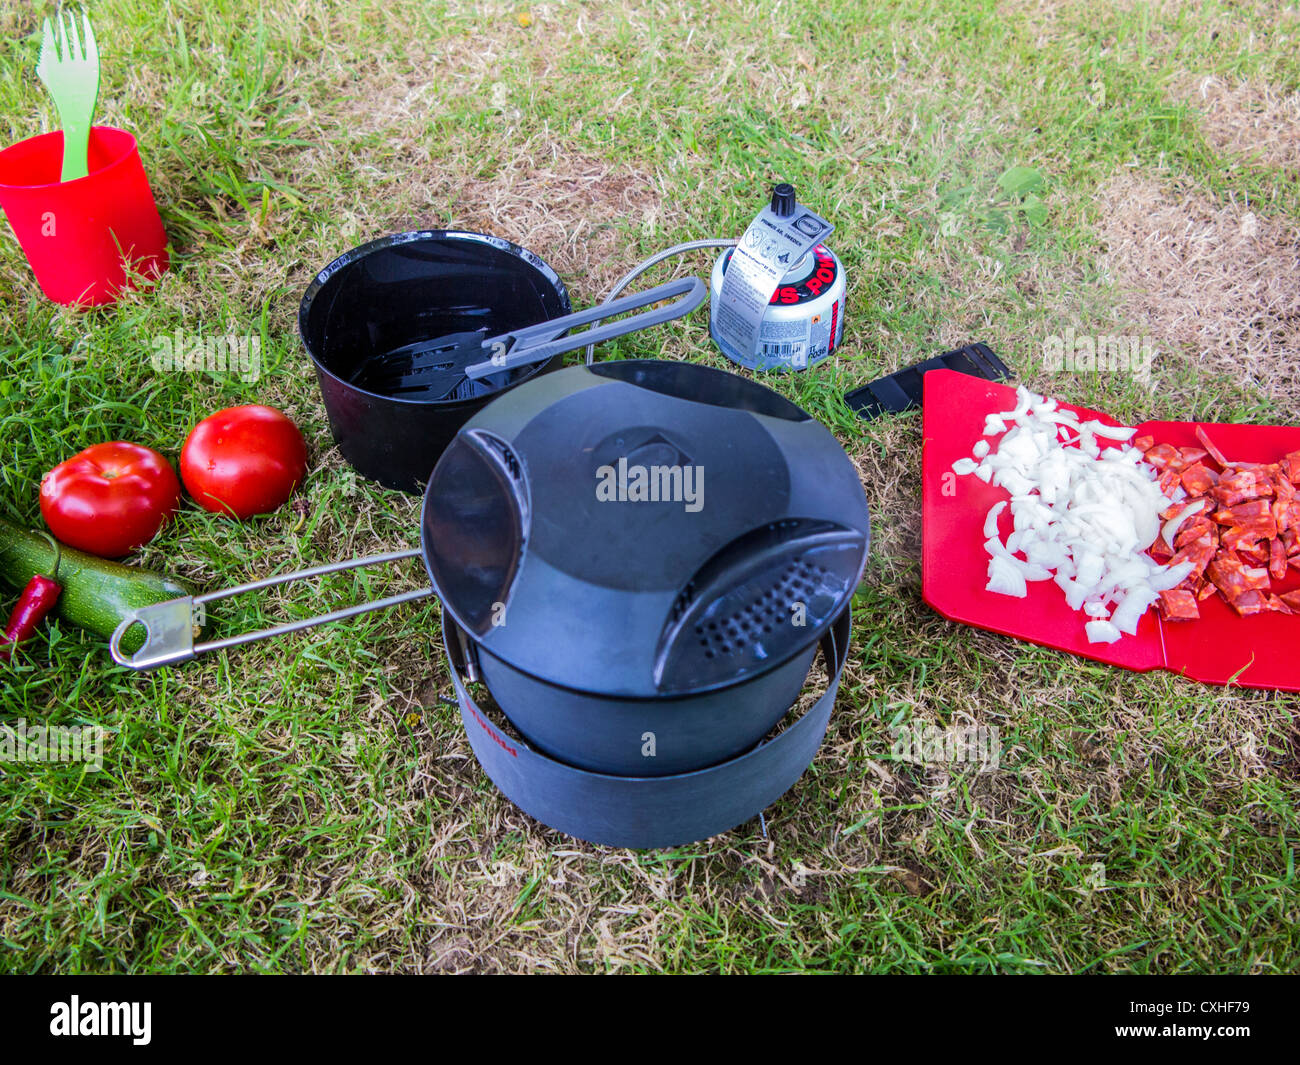 Meal being prepared while camping on small stove and cutting board - Stock Image